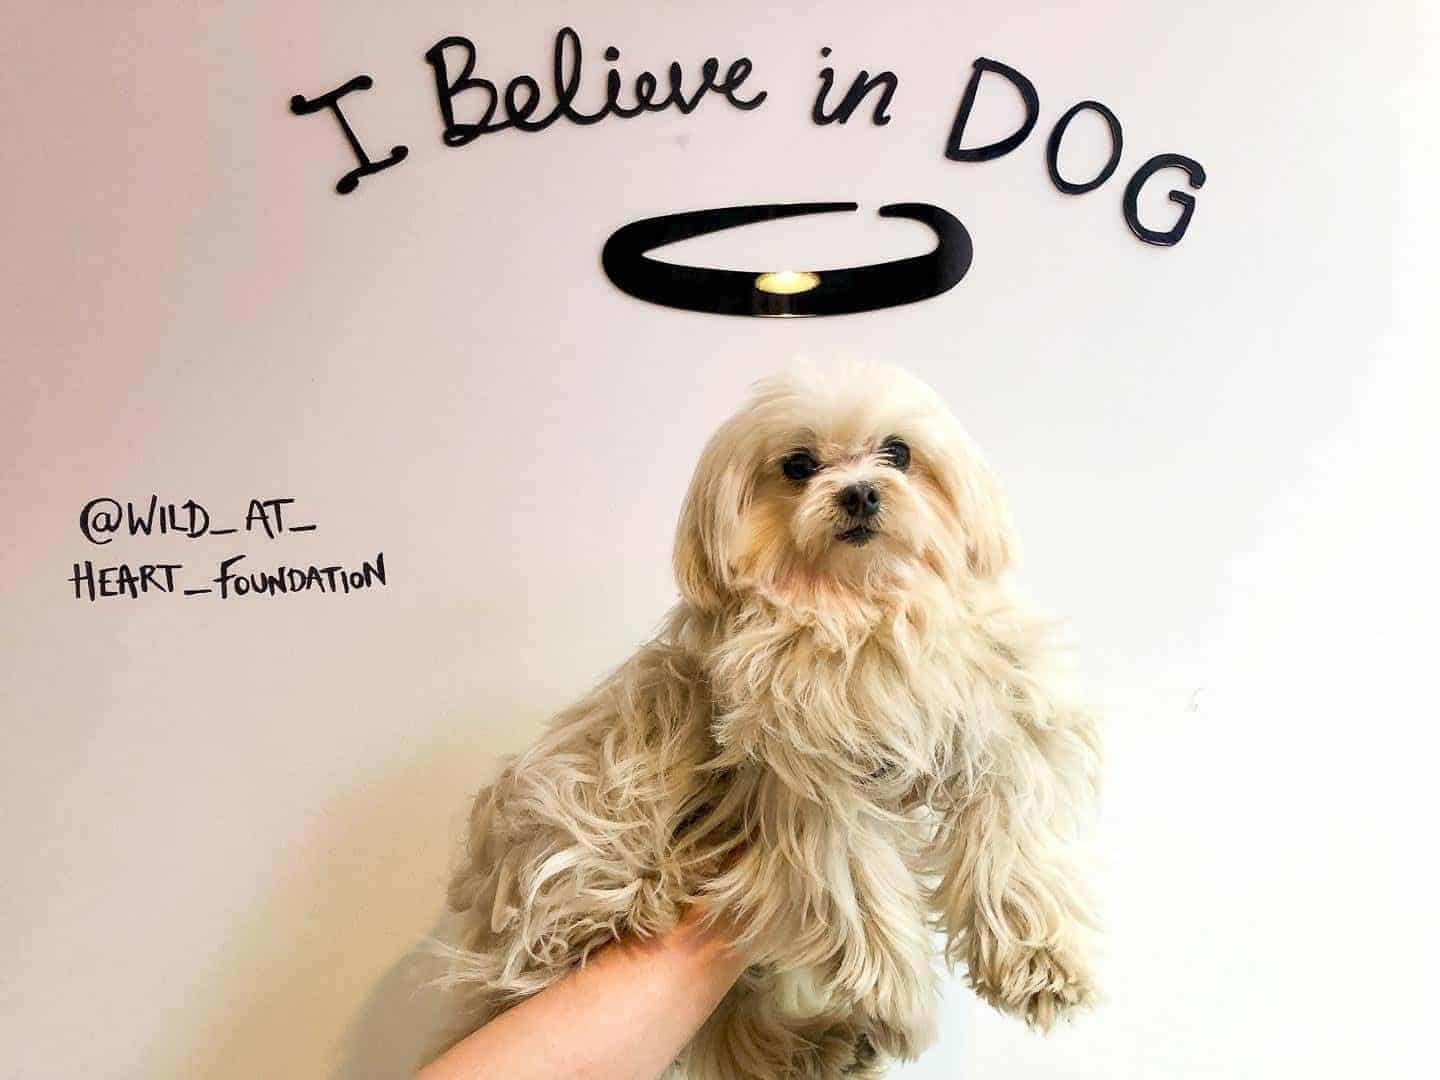 Pup Philanthropy at I Believe In Dog: The Pop-up